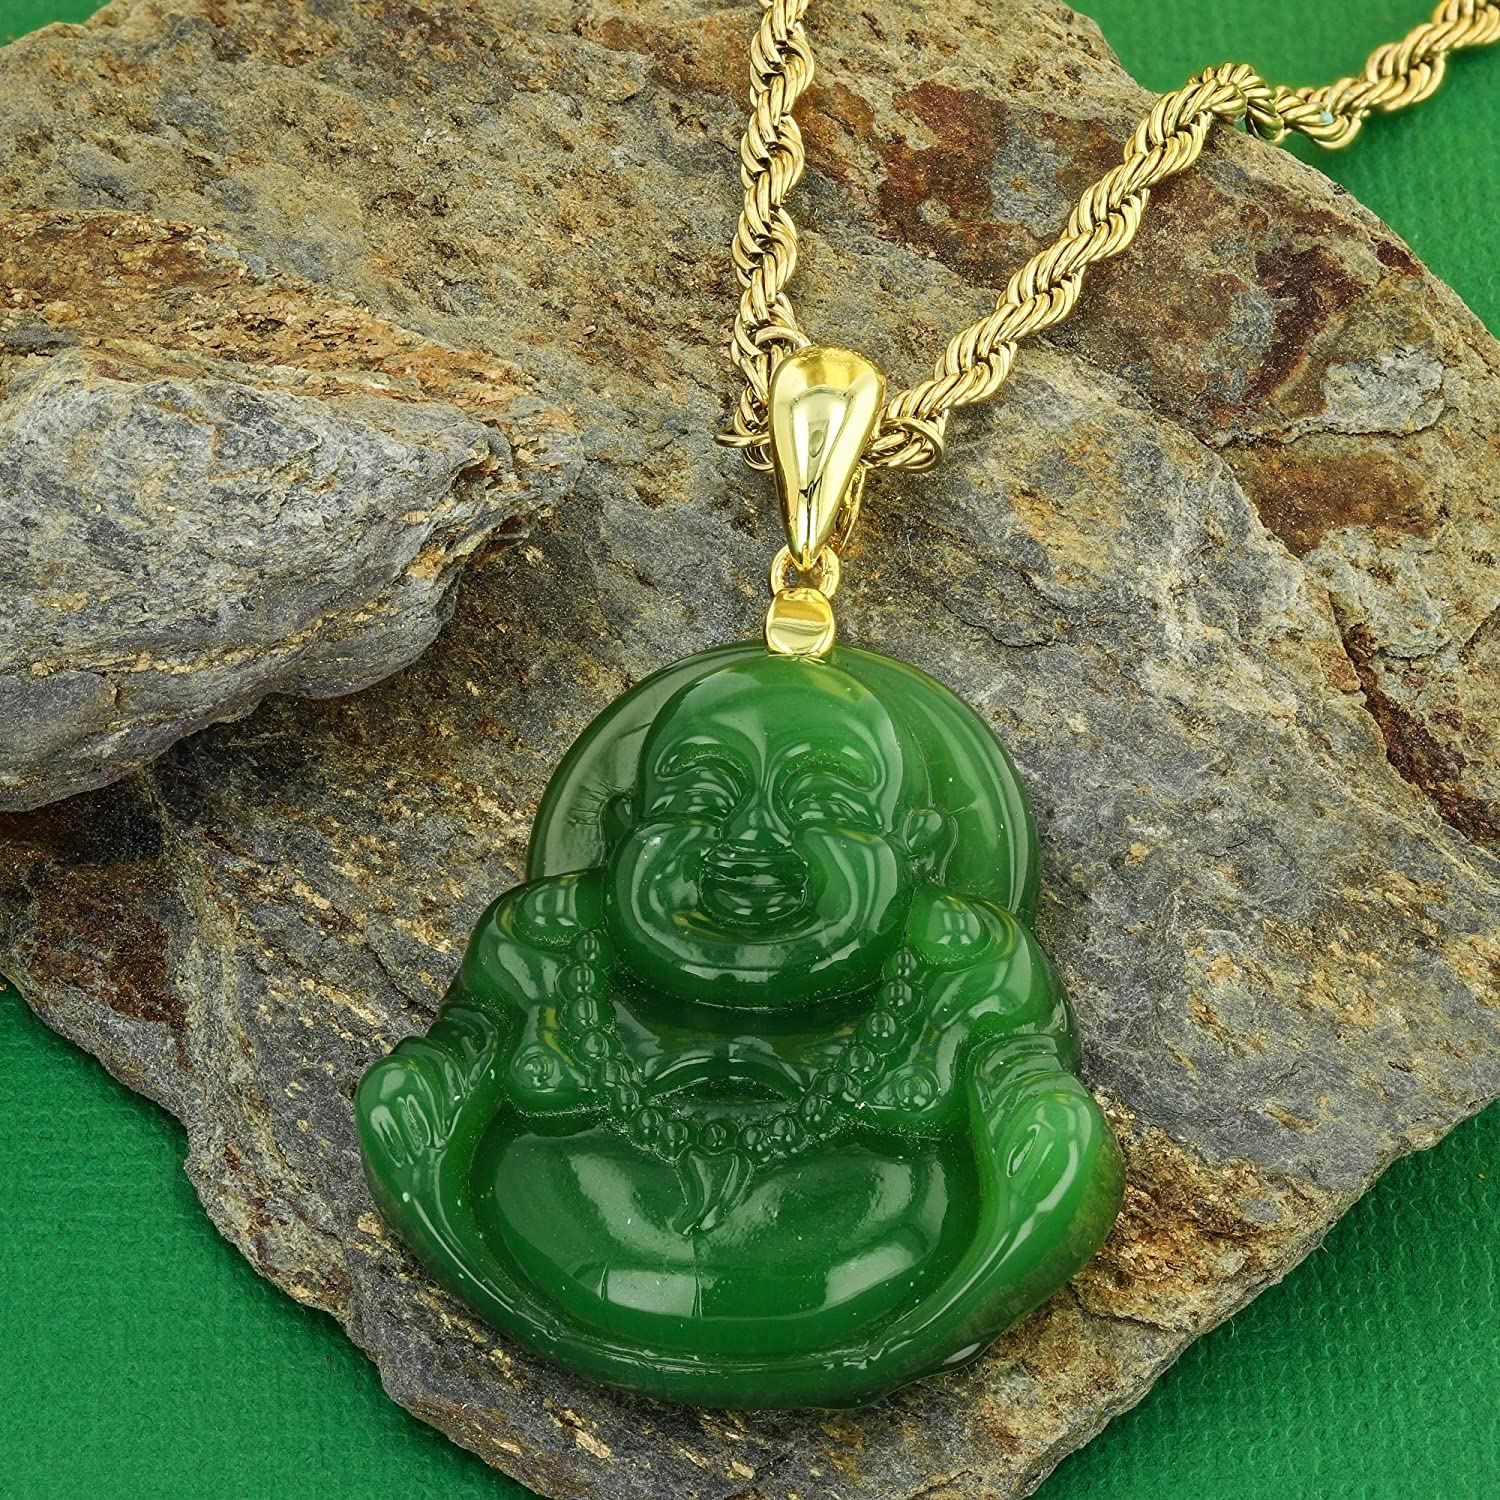 Shop-iGold Laughing Buddha Green Jade Pendant Necklace Rope Chain Genuine Certified Grade A Jadeite Jade Hand Crafted, Jade Necklace, 14k Gold Filled Laughing Jade Buddha Medallion